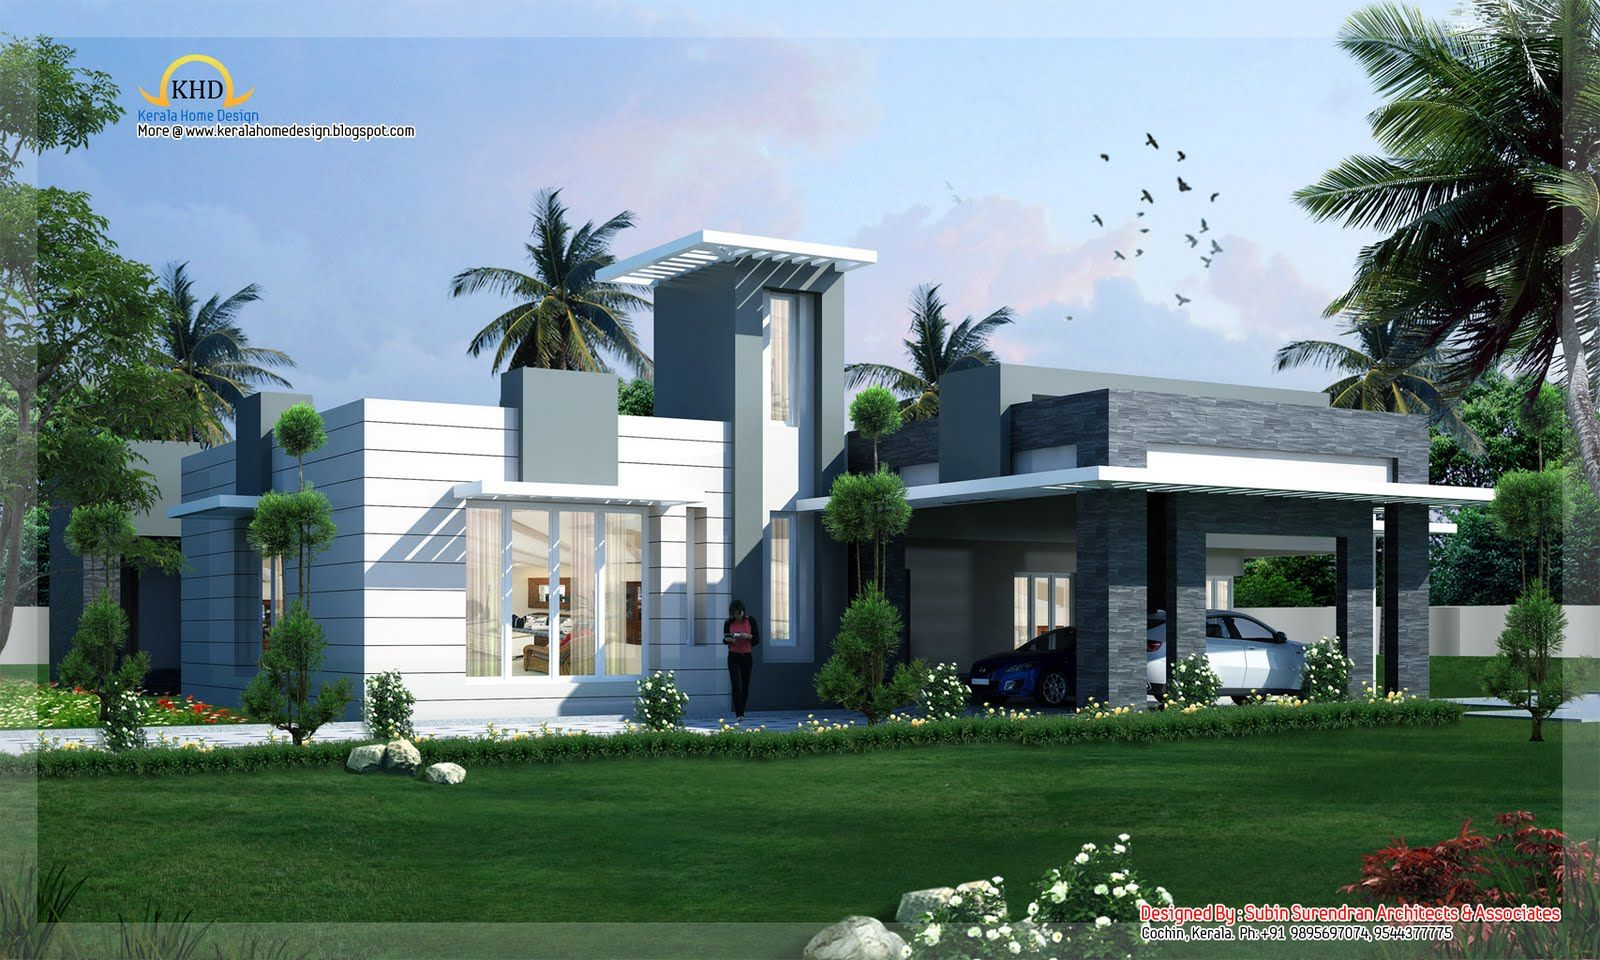 New House Designs Contemporary Home Design 418 Sq M 4500 Sq Ft